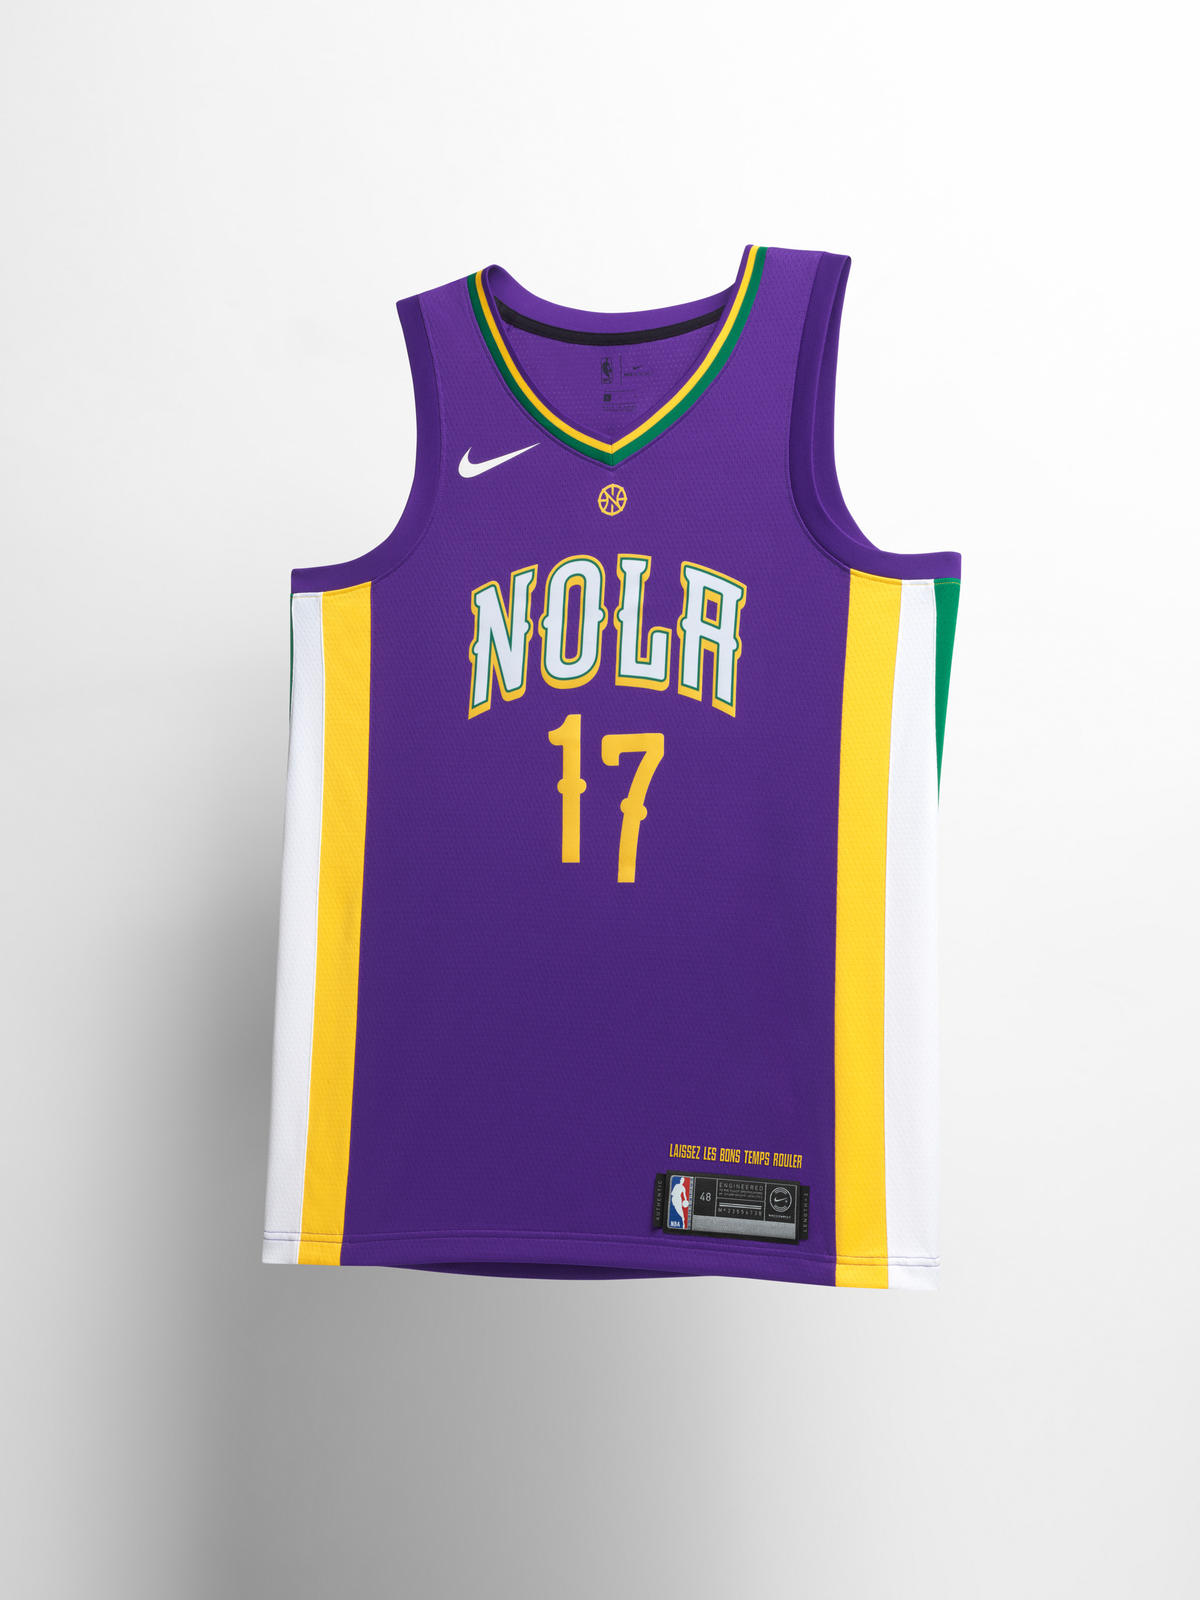 0d39380c0 Nike NBA City Edition Uniform 65. New Orleans Pelicans